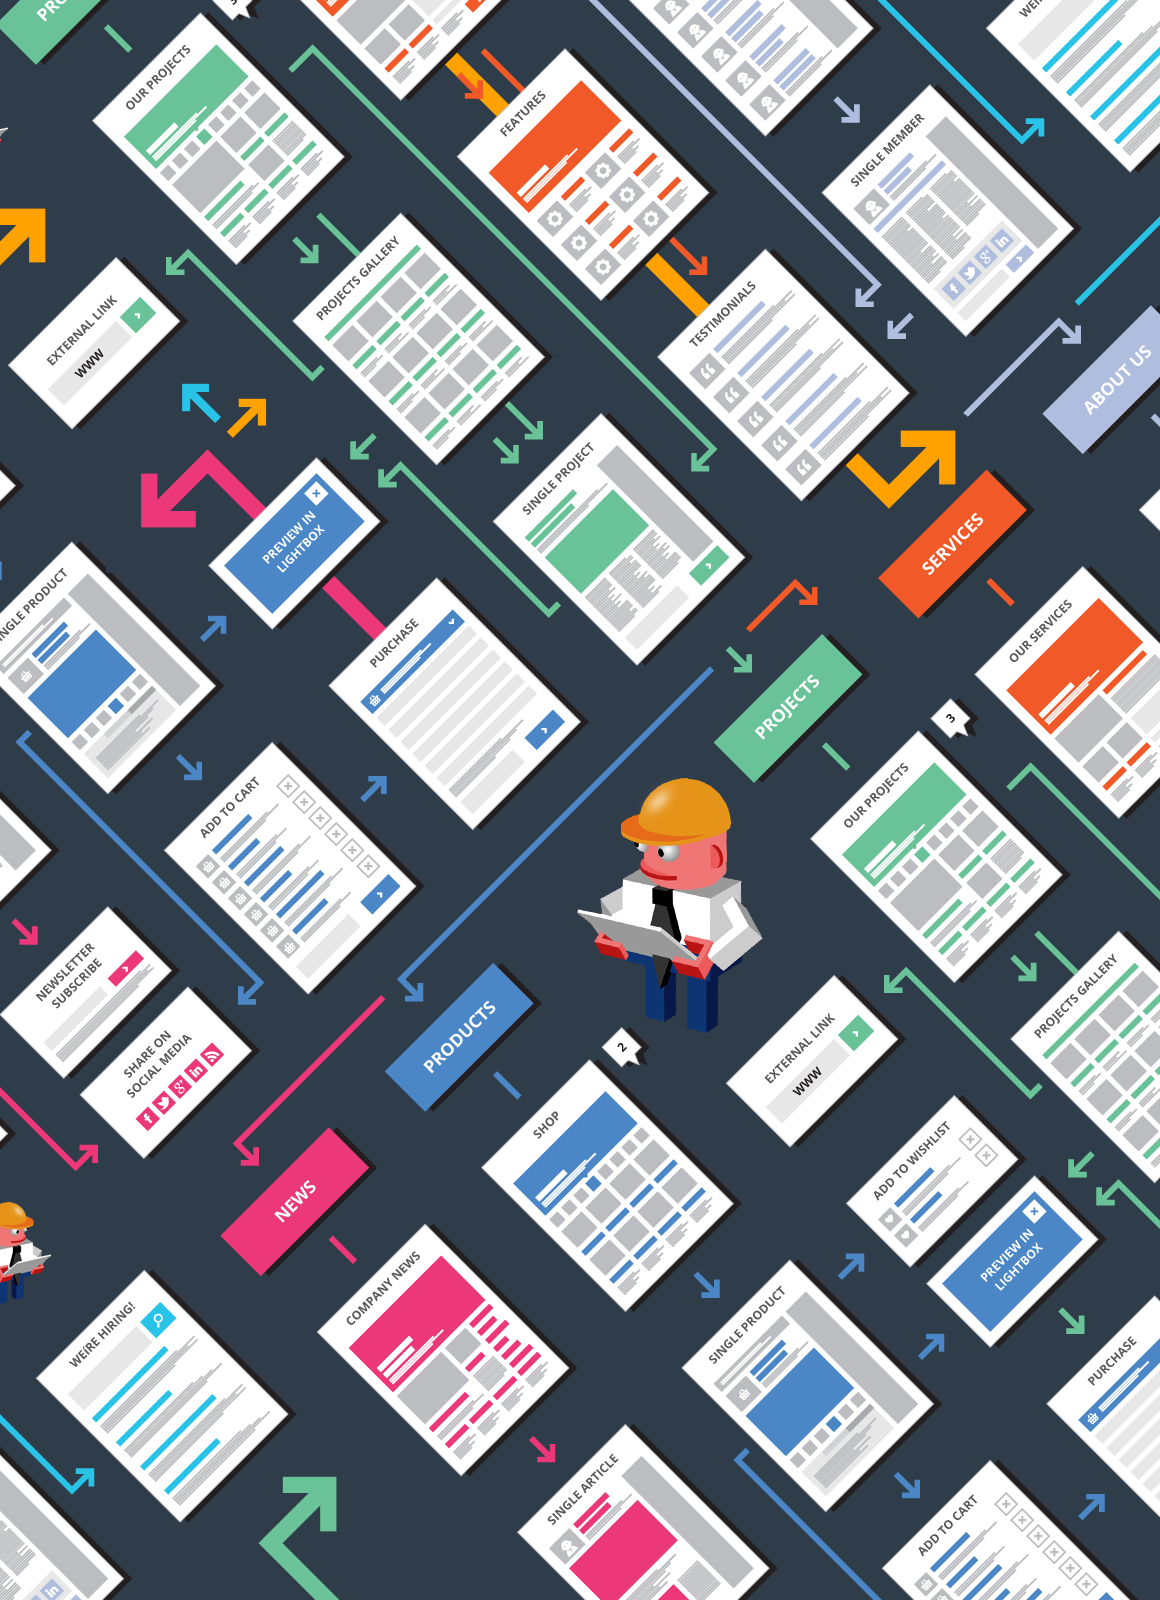 UX Flowcharts | UX Cards and Useful Digital Tools for UX Planning ...